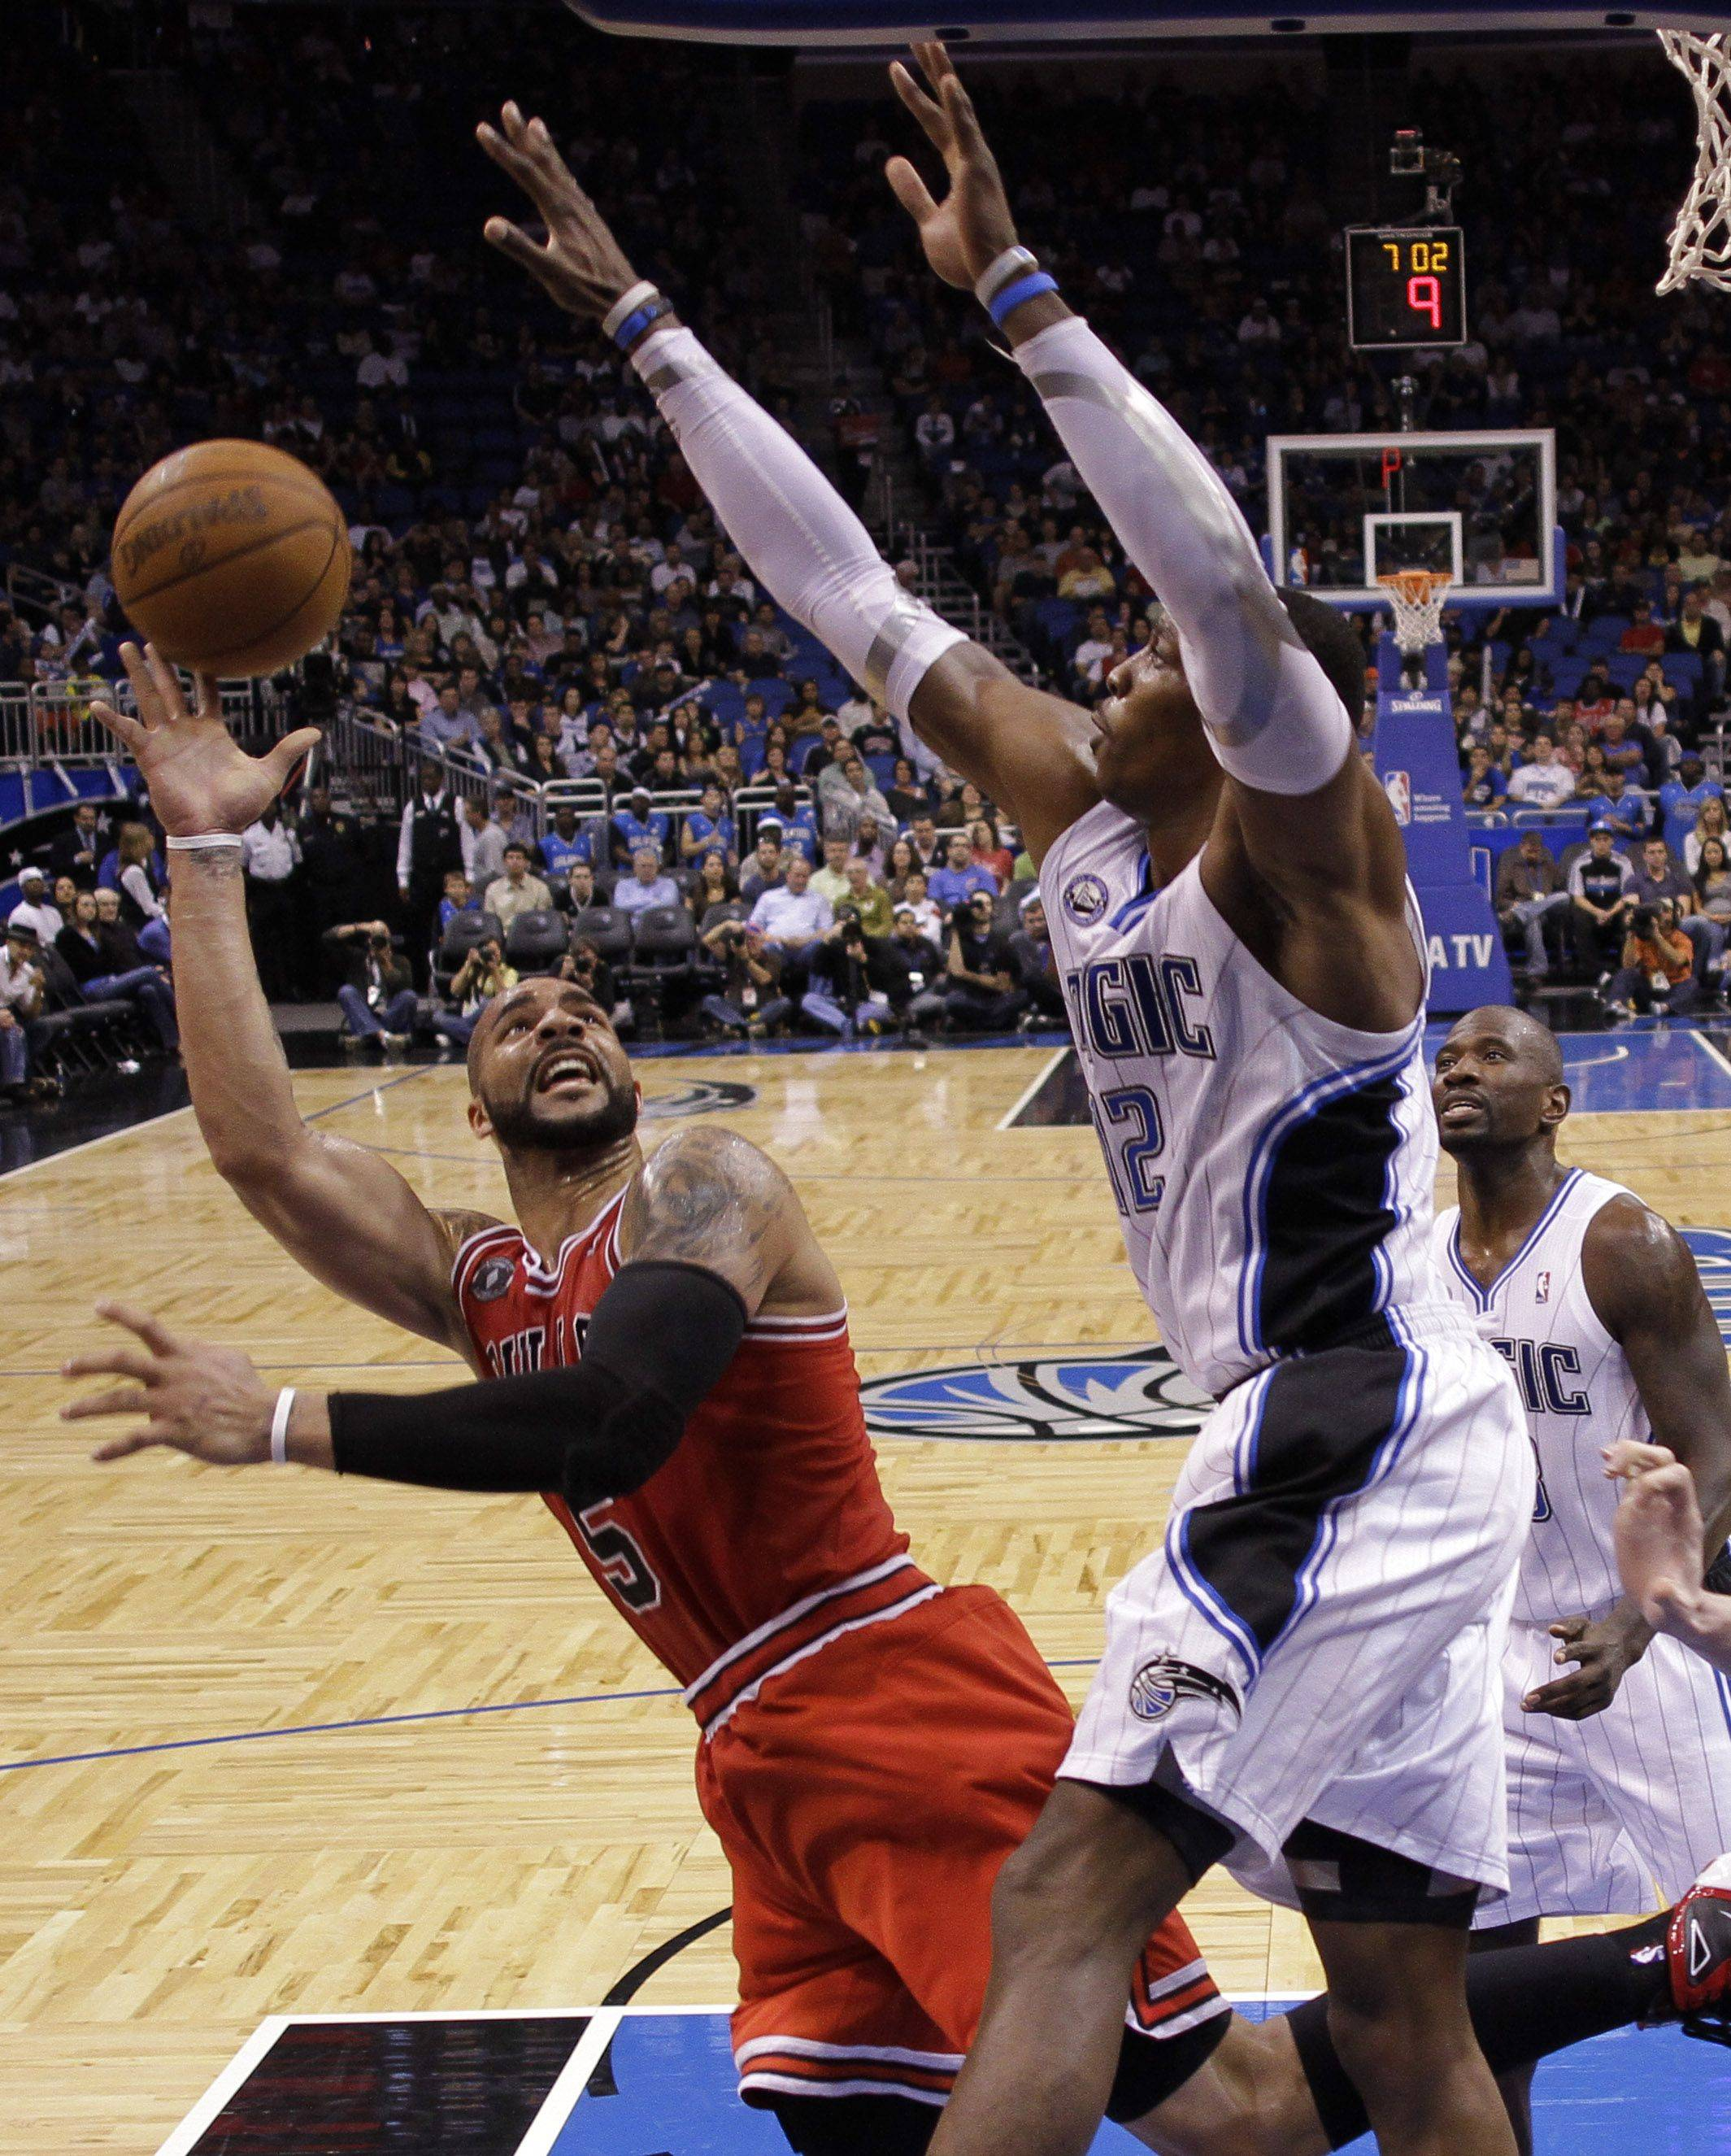 The Bulls' Carlos Boozer puts up a shot over Magic center Dwight Howard during last Friday's victory over Orlando.